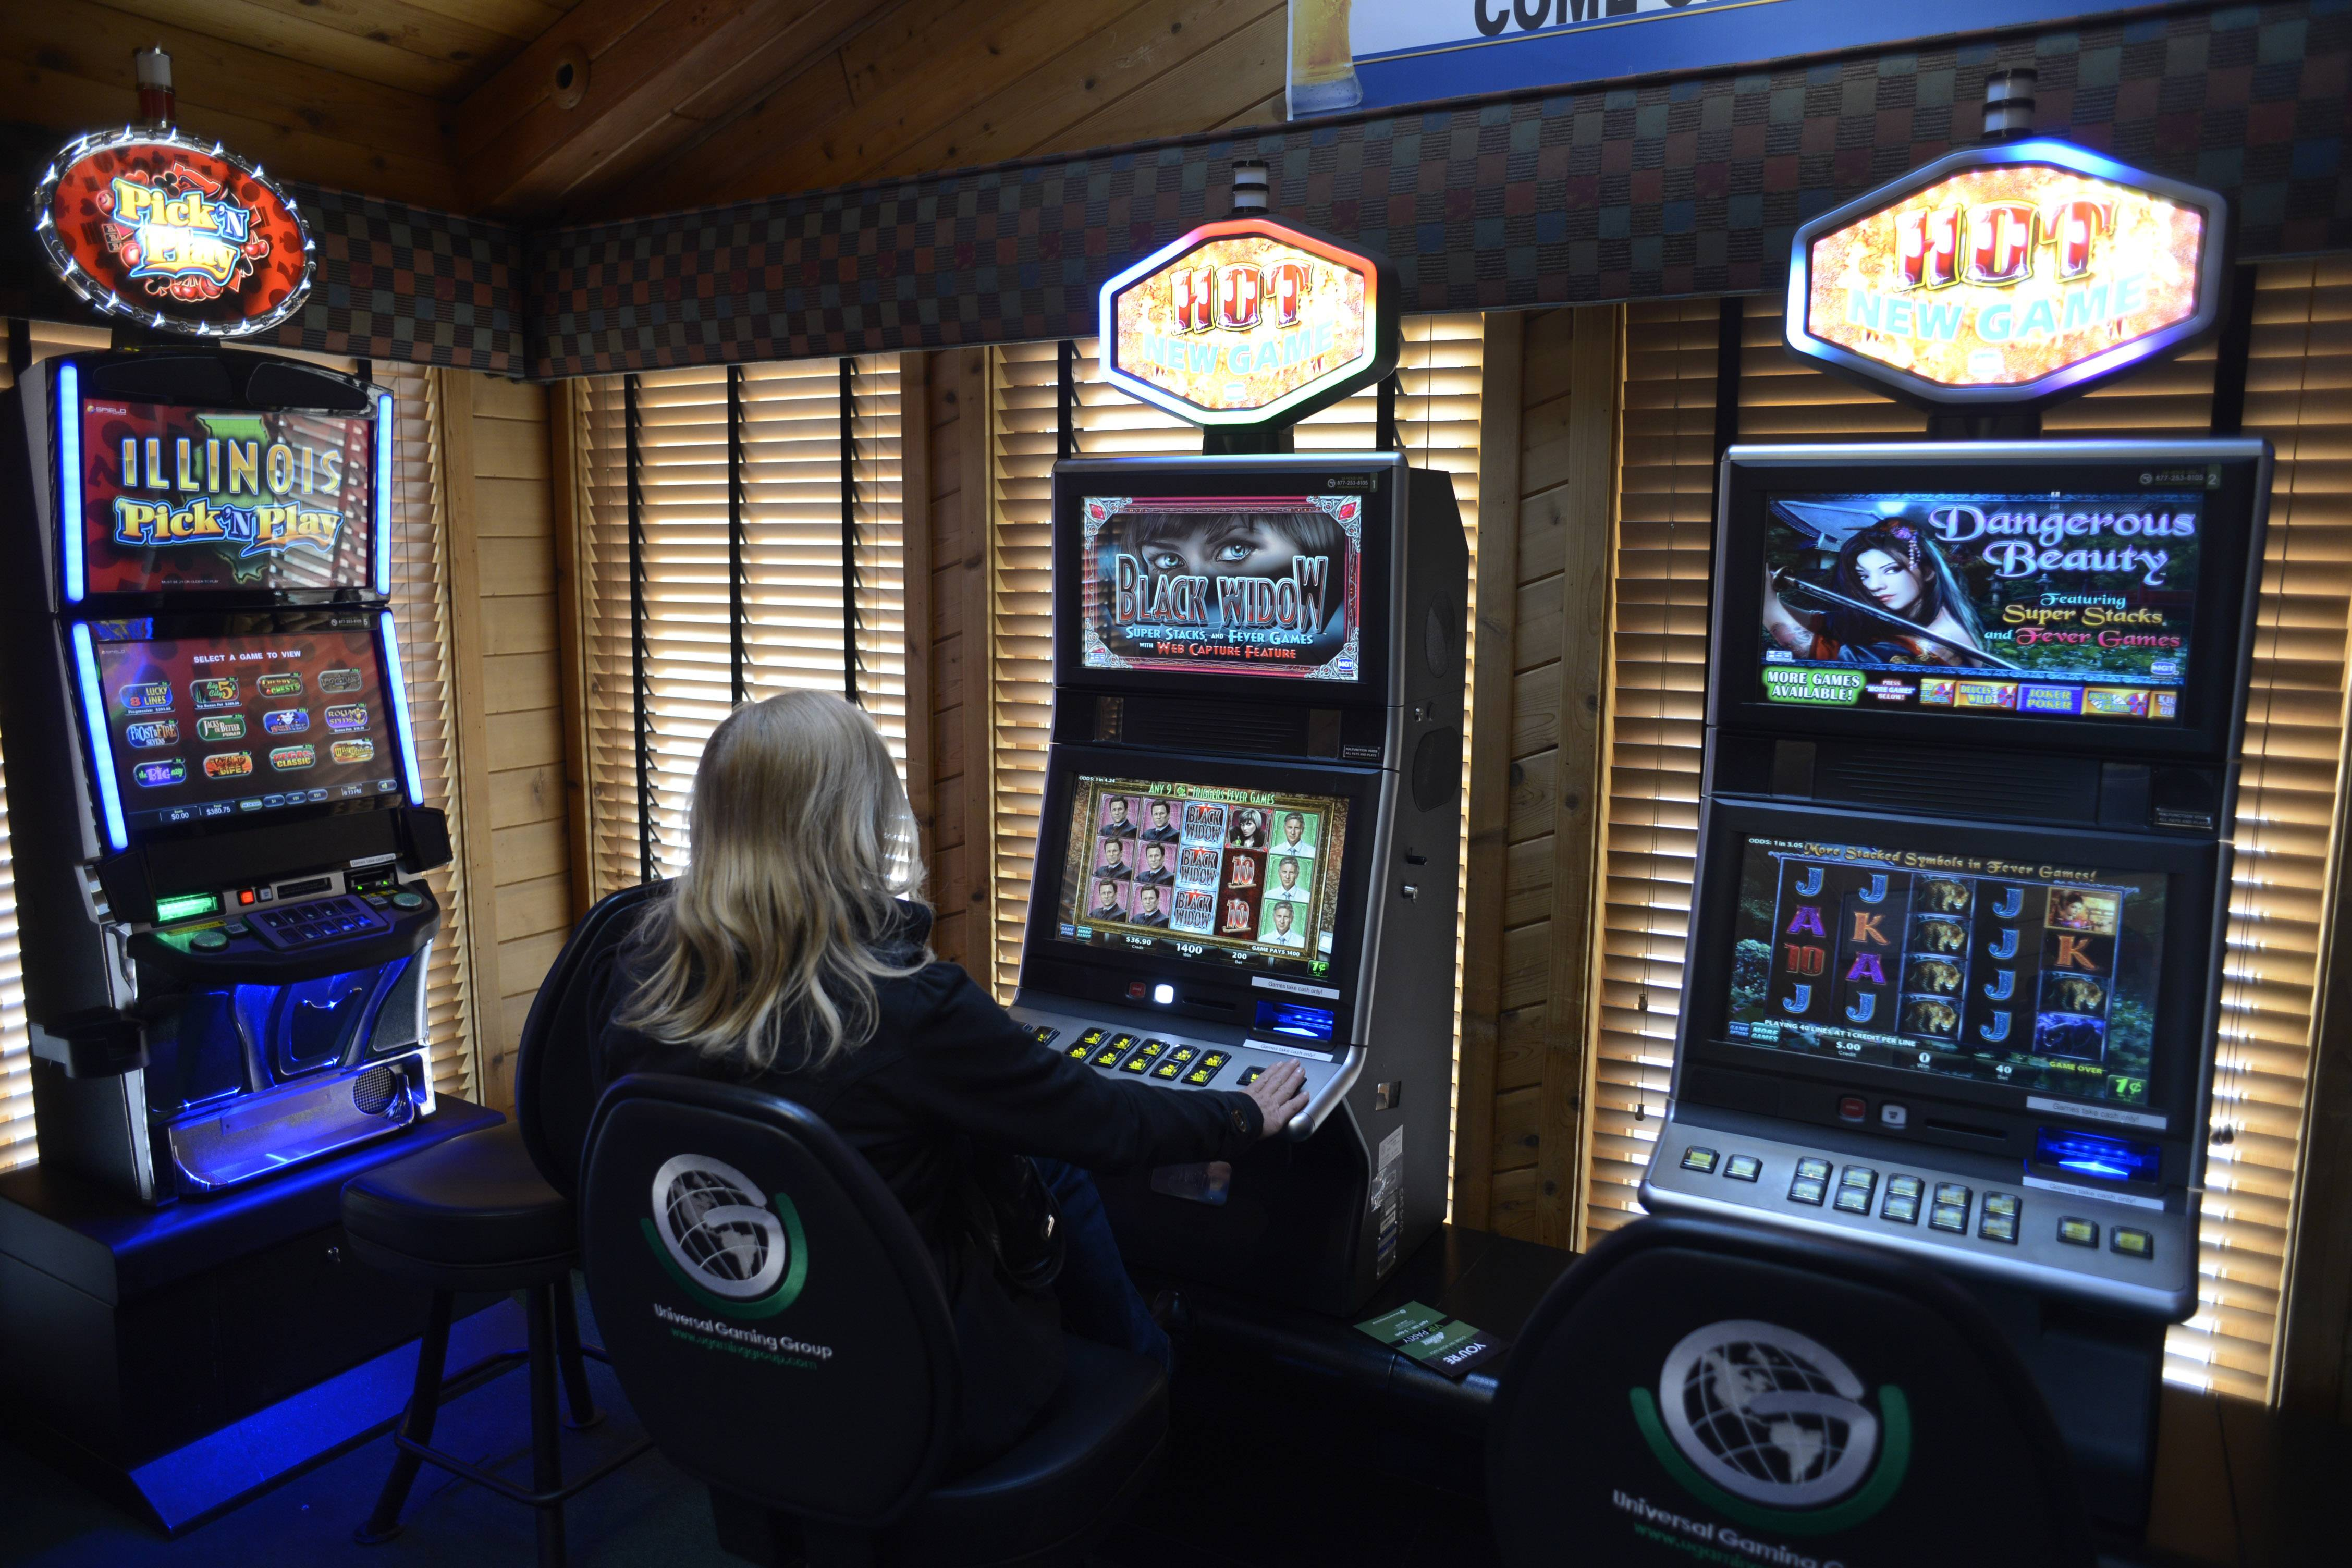 A patron plays a video gambling machine at The Assembly in Hoffman Estates.